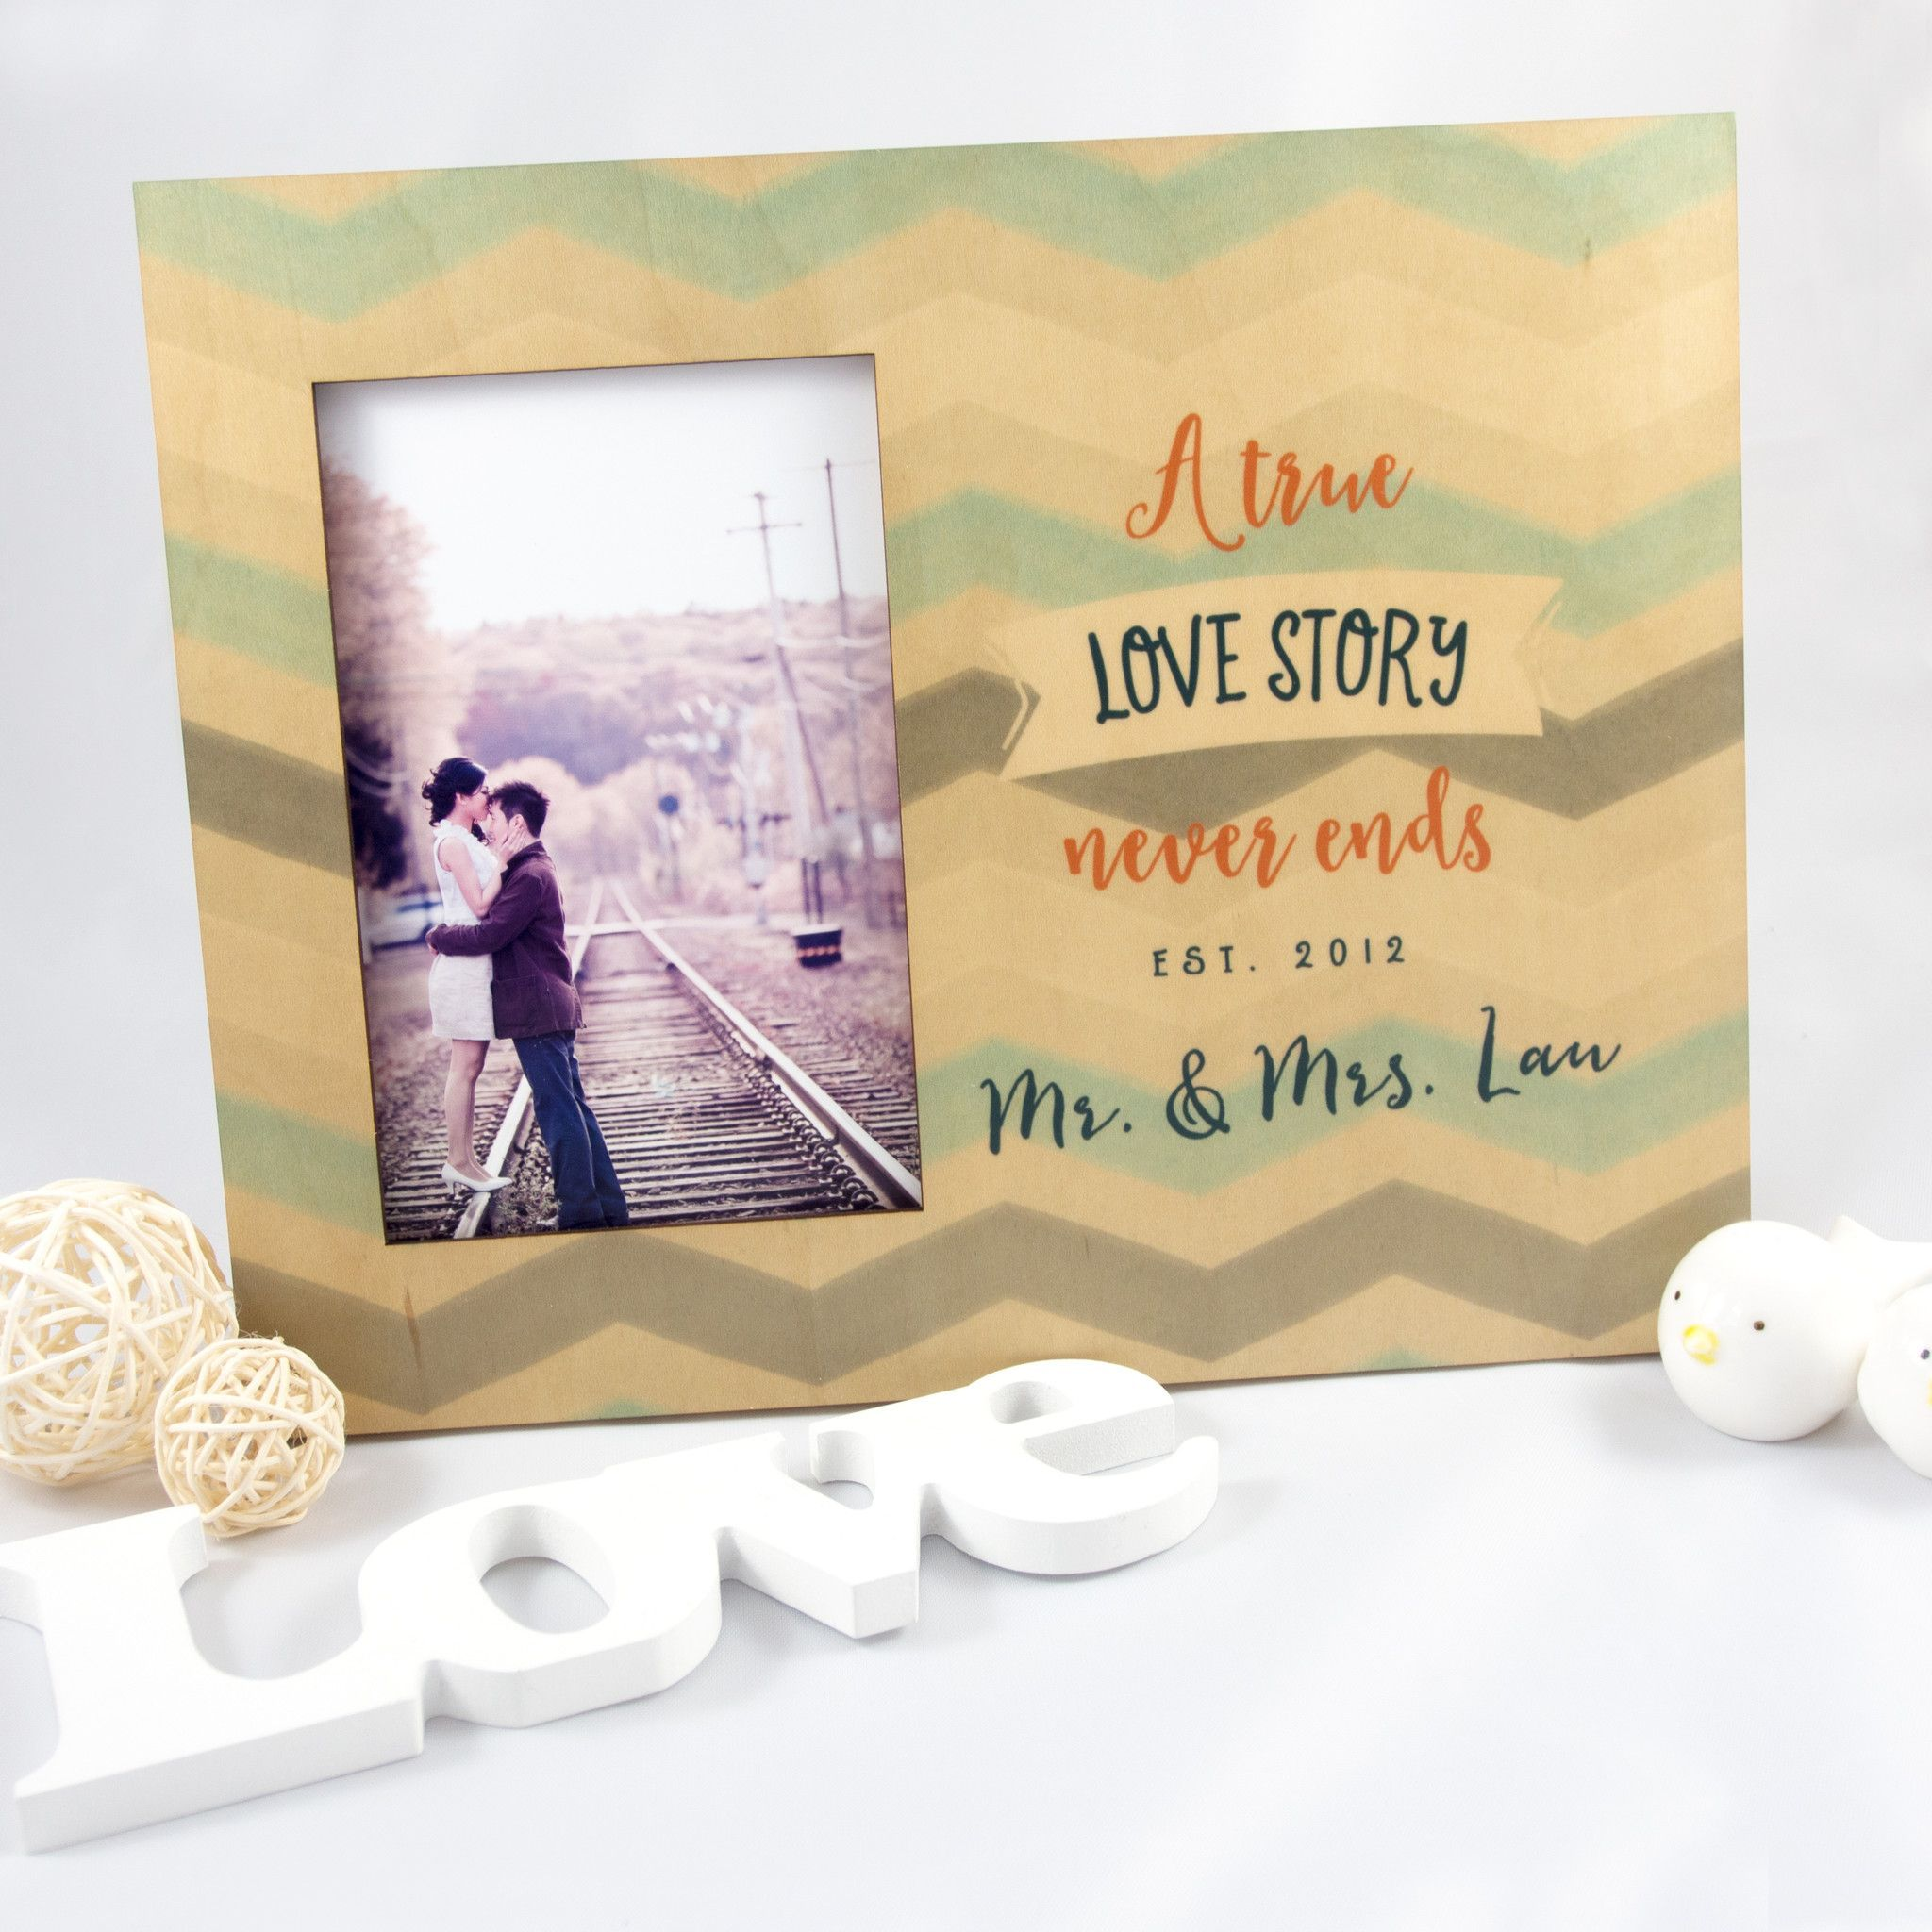 Personalized Wood Photo Frame - Love Story